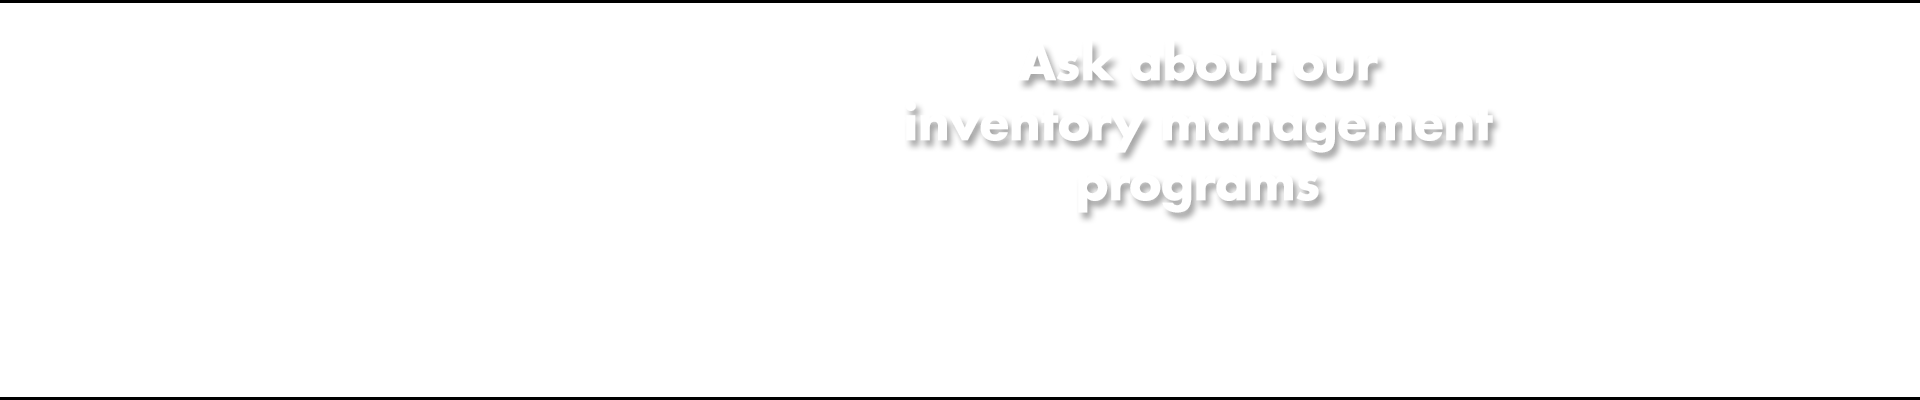 ask about our inventory management programs